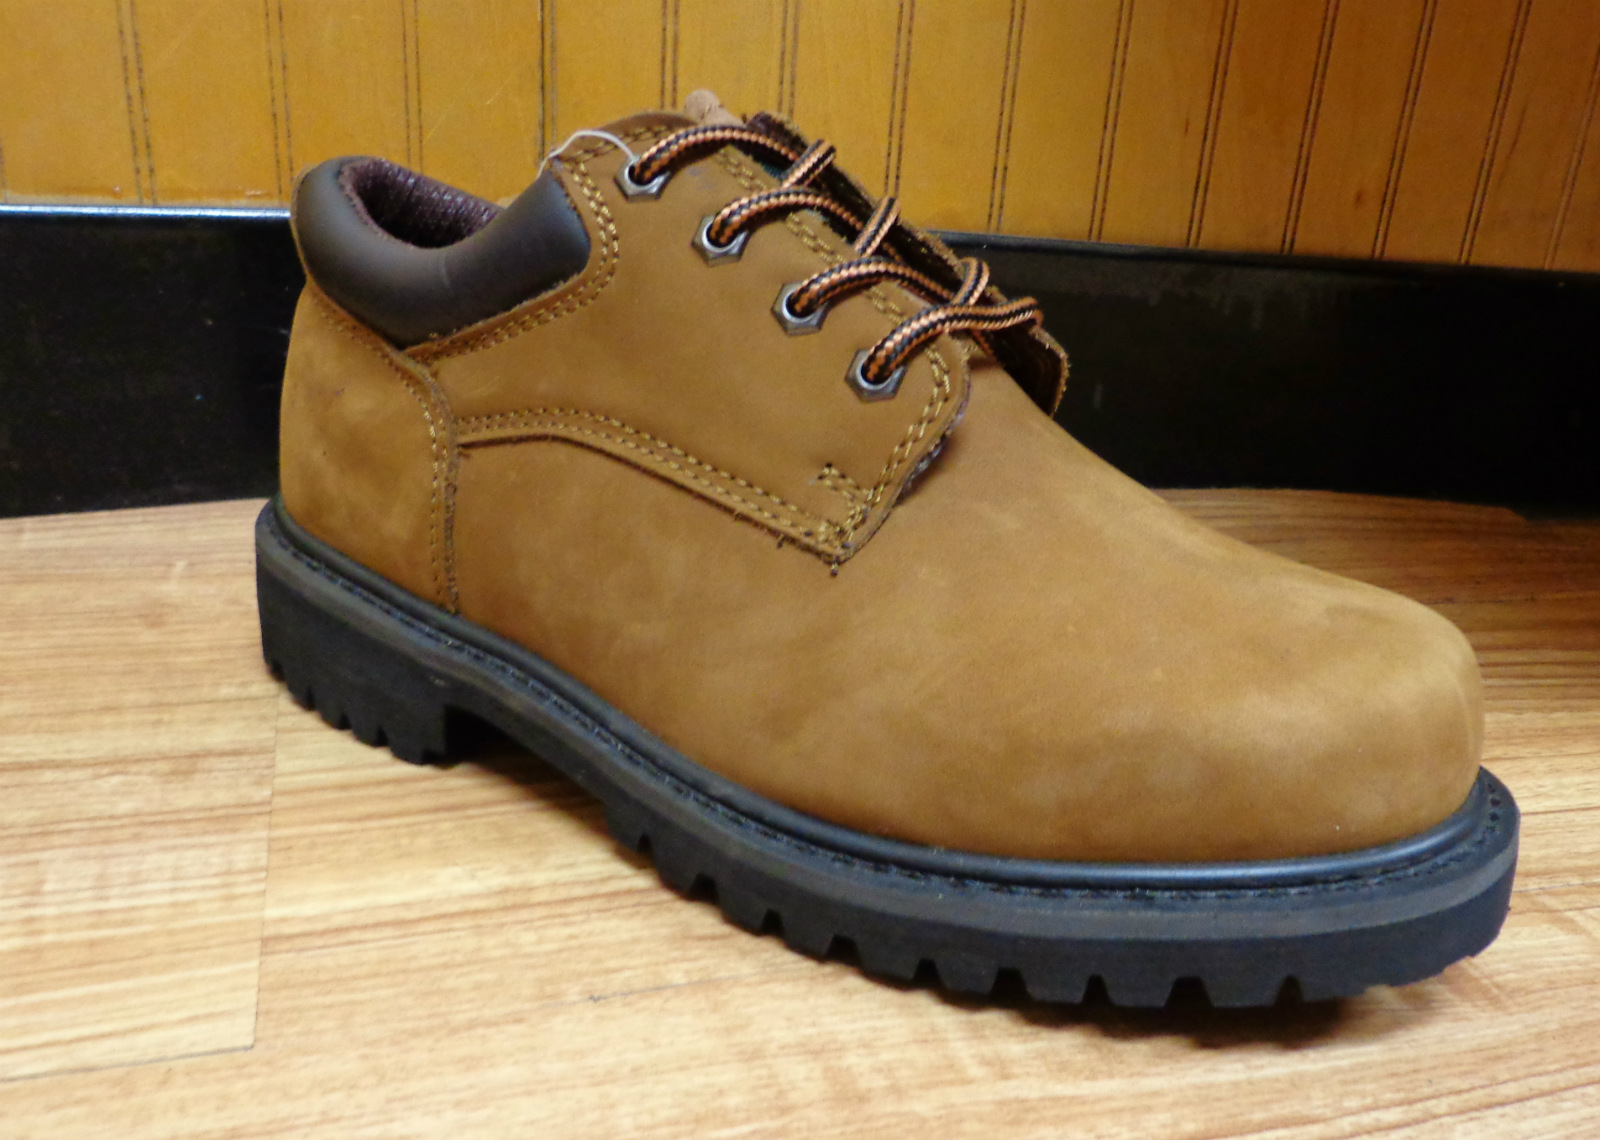 eurbak low cut work boots water resistant and insulated